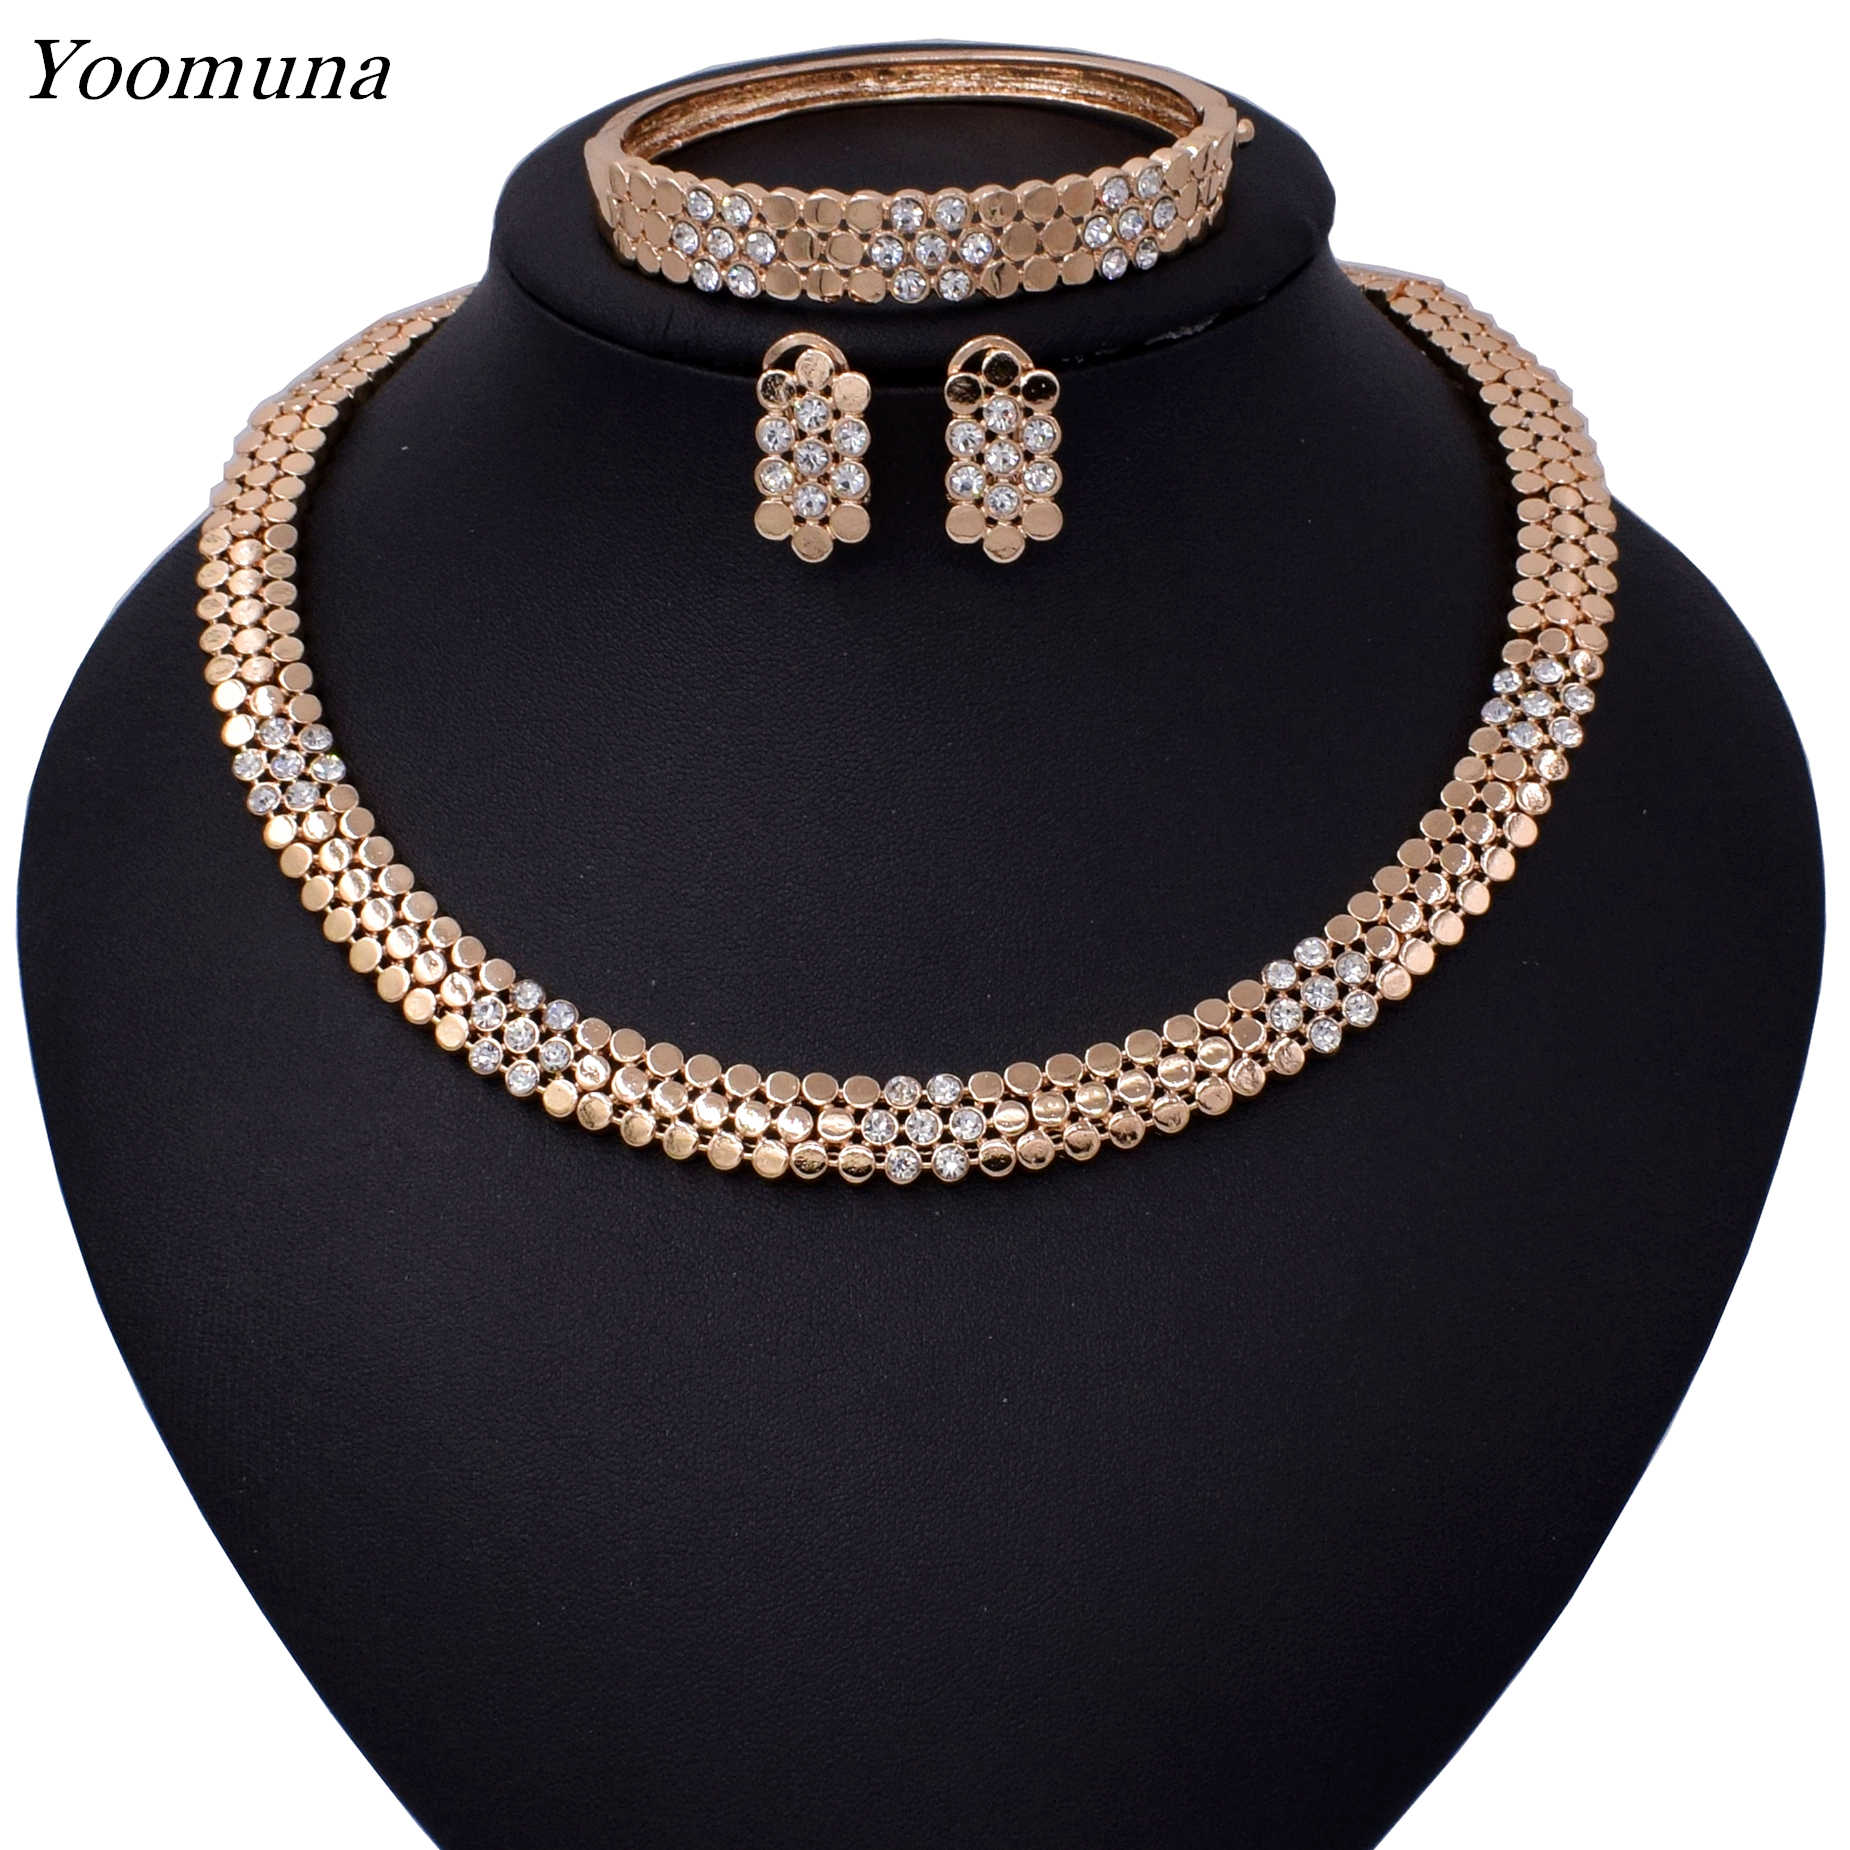 Fashion dubai jewelry sets  Gold/Silver color Jewelry Sets Women Nigerian Wedding Fashion African Beads Jewelry set